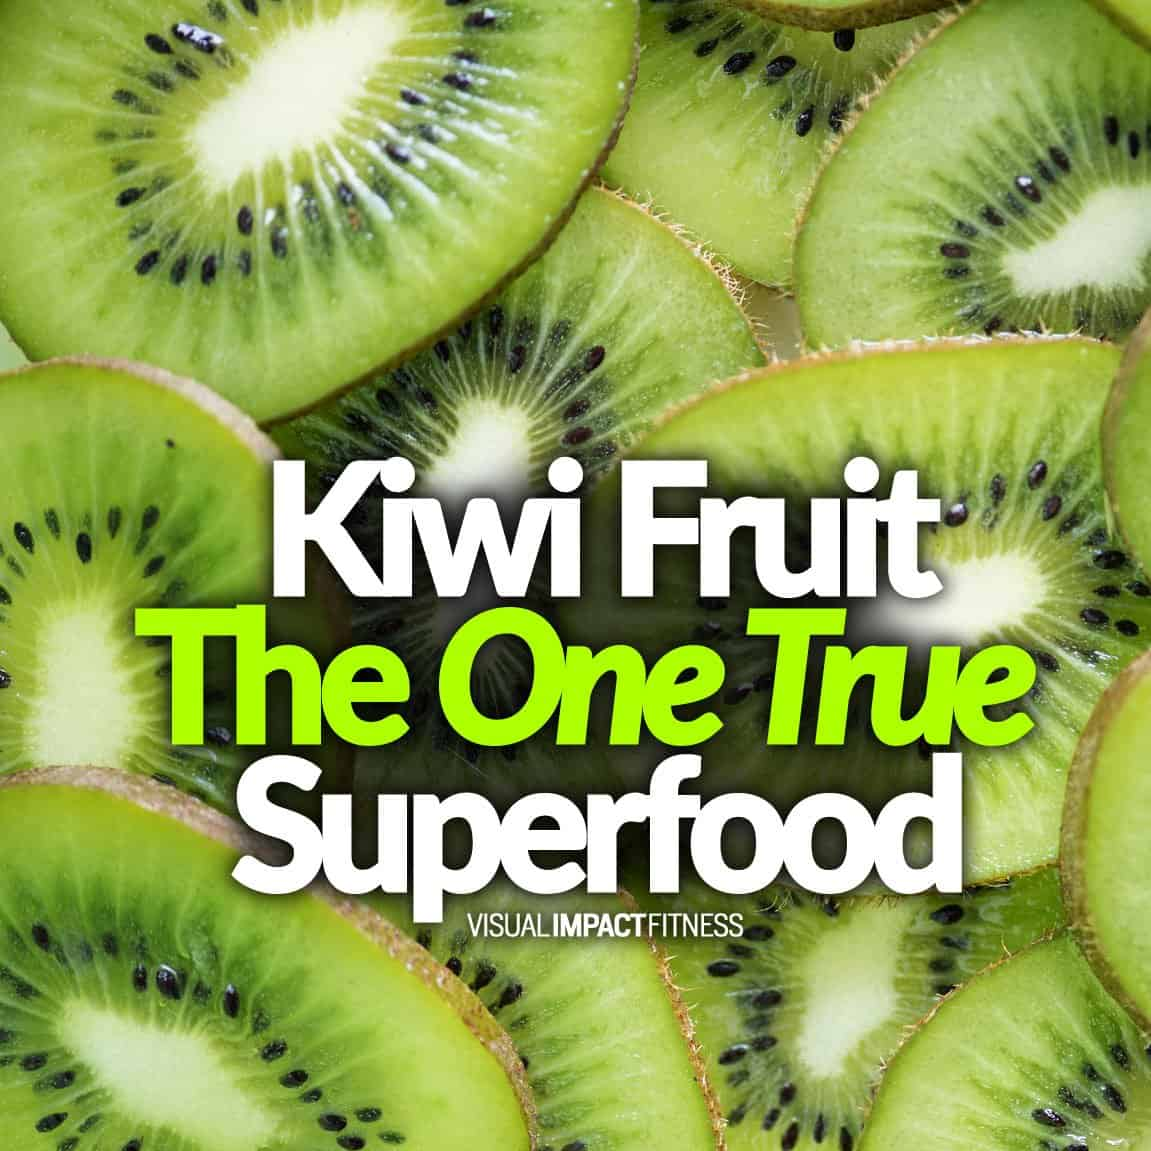 Kiwi Fruit The One True Superfood